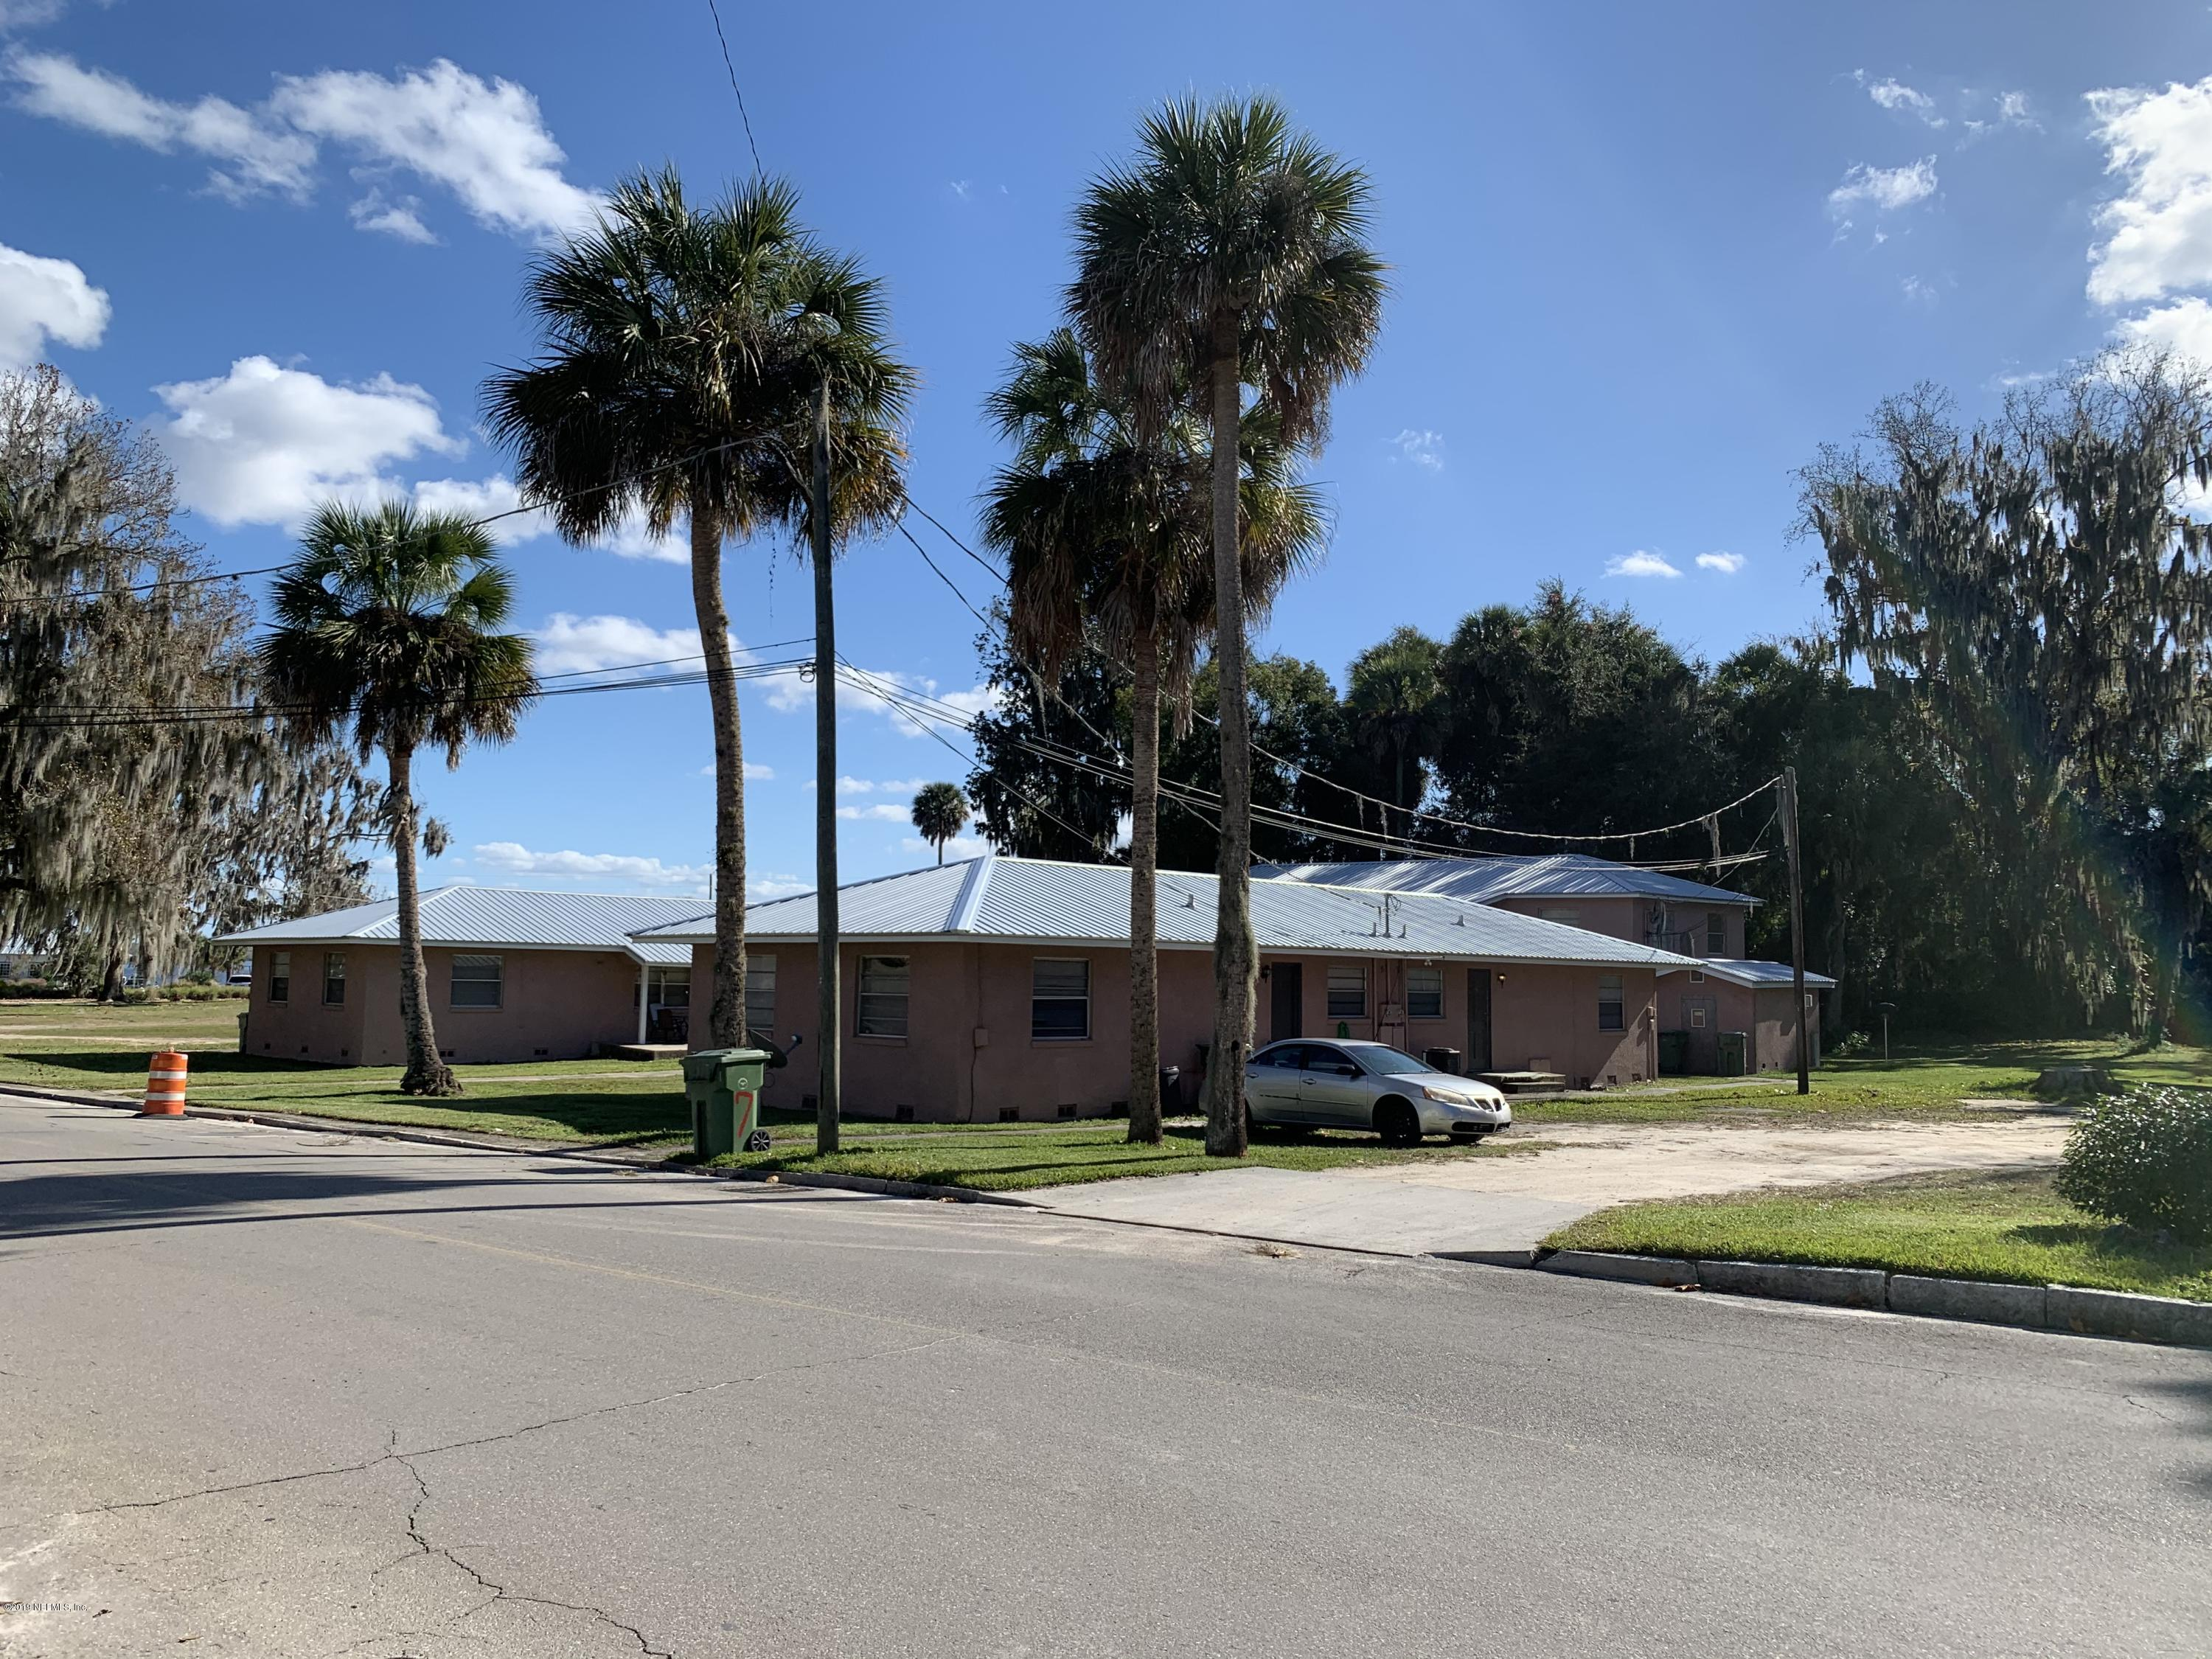 313 LAUREL, PALATKA, FLORIDA 32177, 16 Bedrooms Bedrooms, ,8 BathroomsBathrooms,Investment / MultiFamily,For sale,LAUREL,1029678